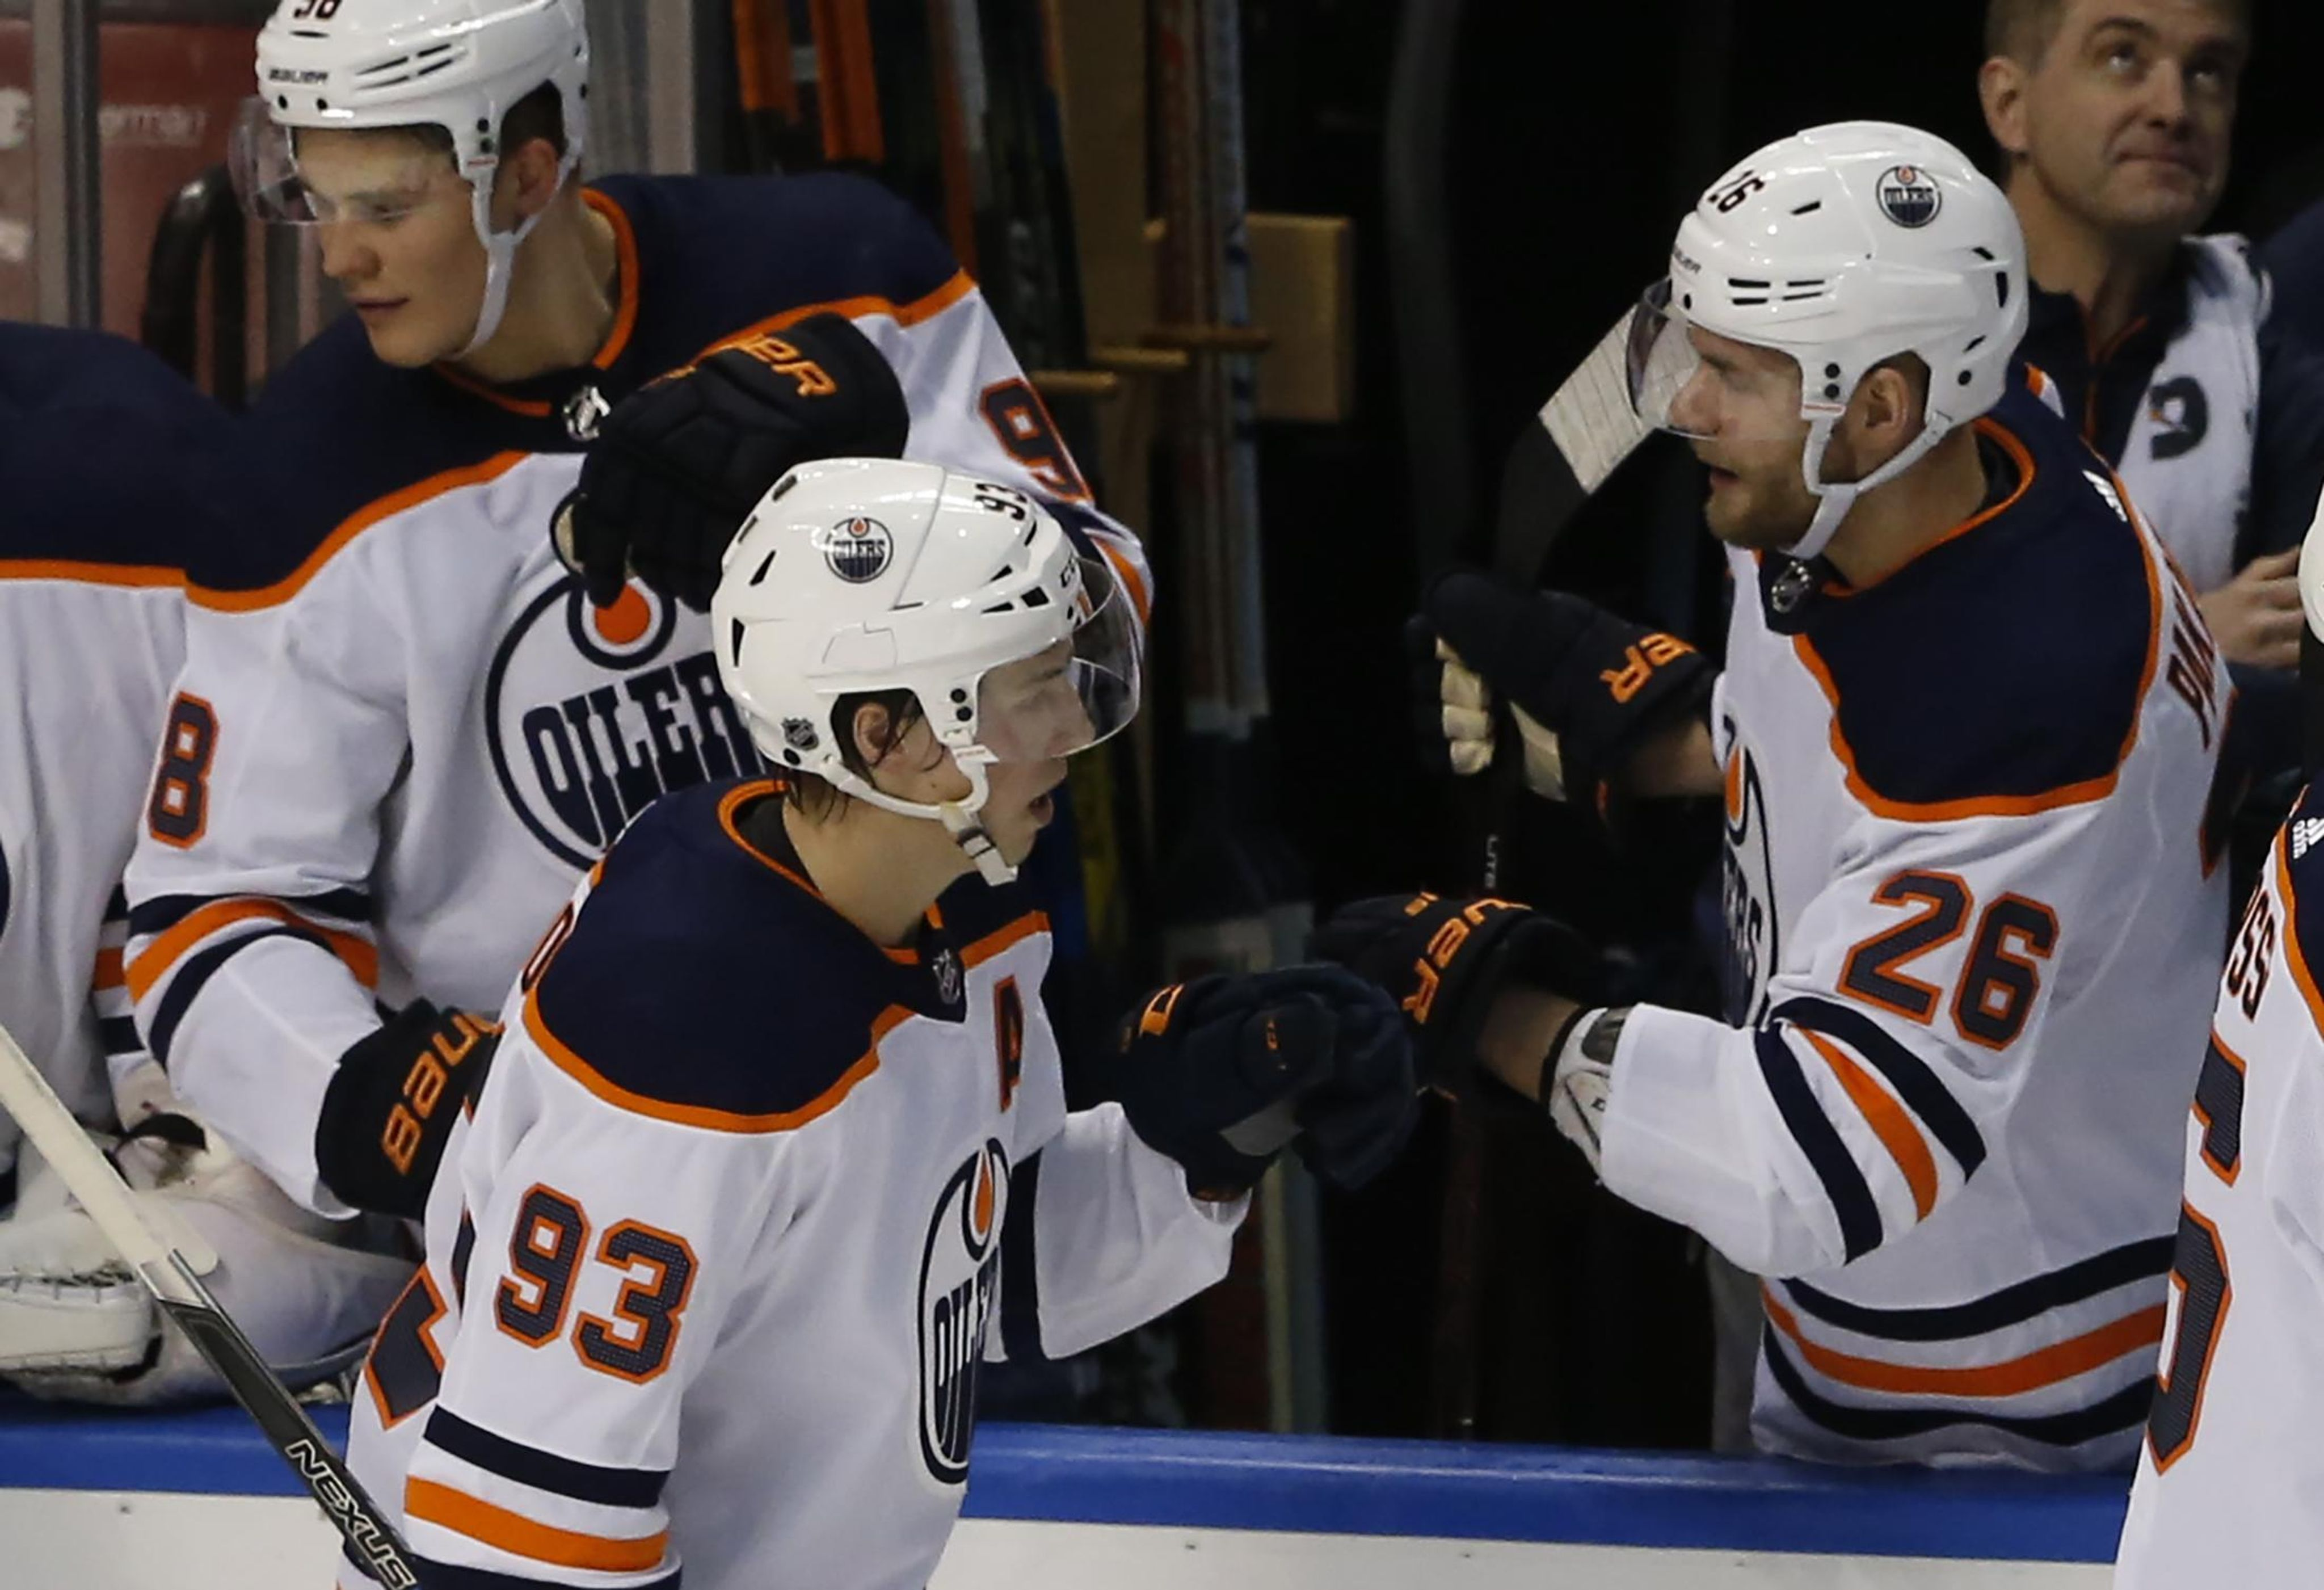 Oilers_panthers_hockey_41305_s4096x2802